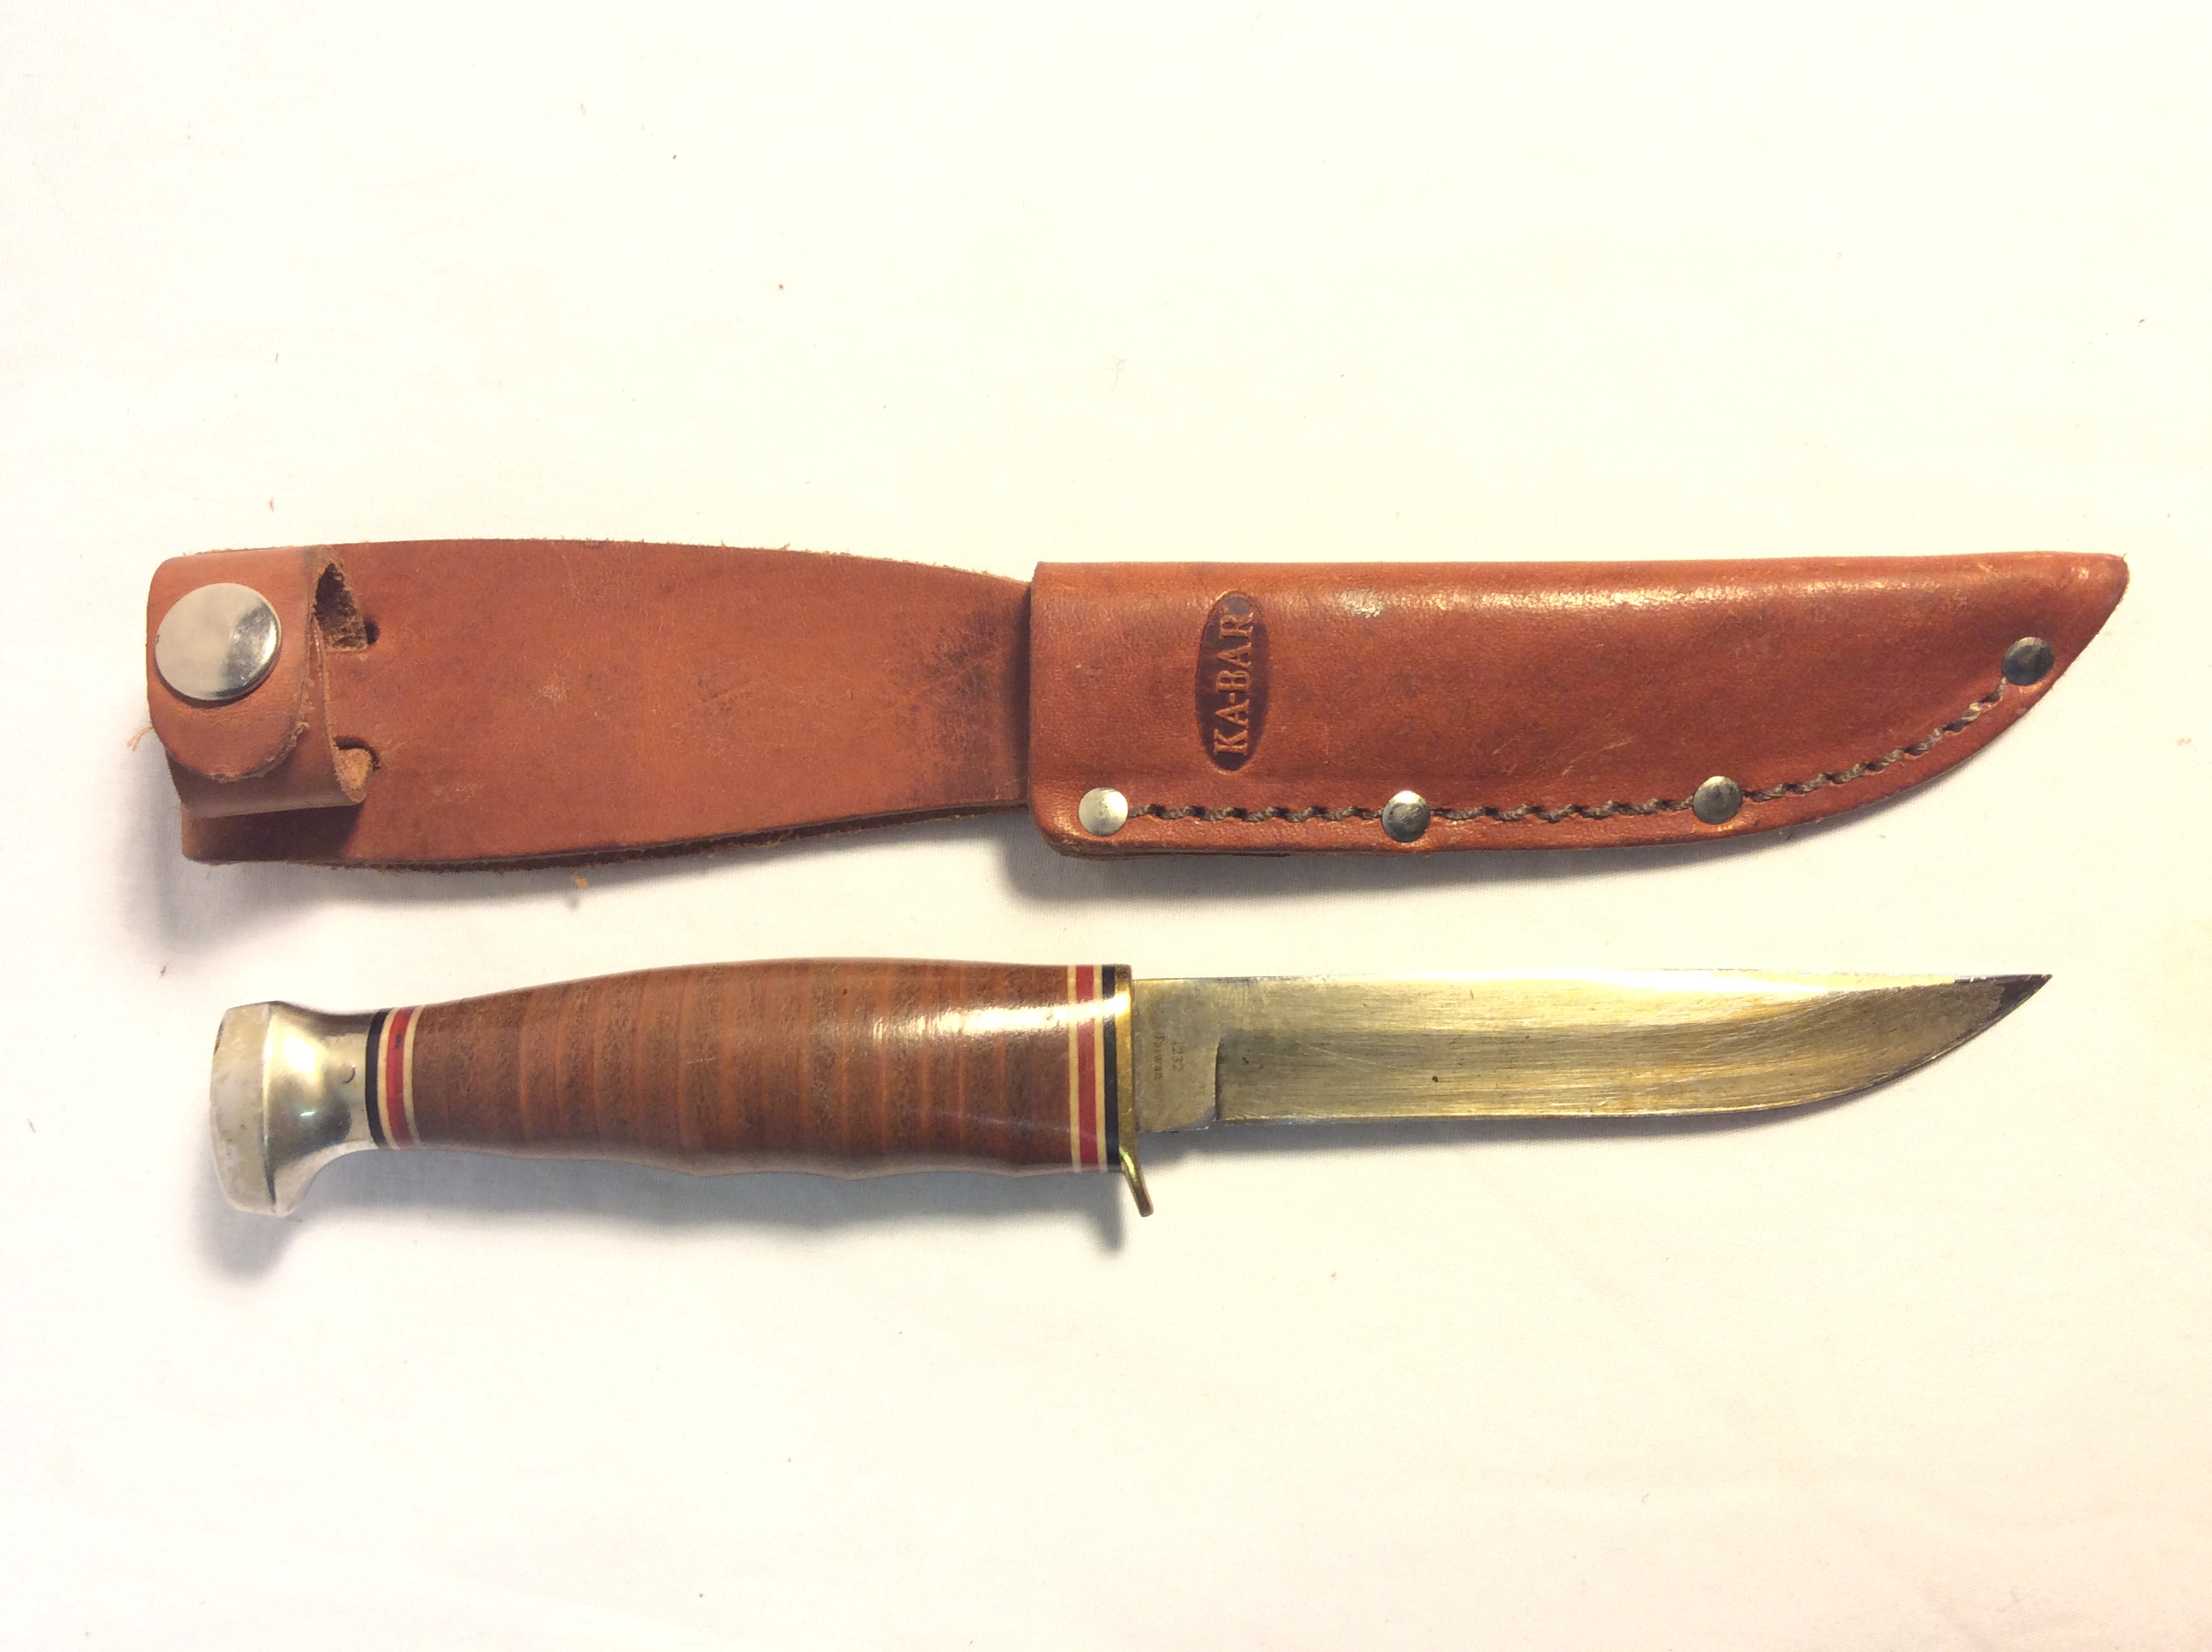 "Ka-bar knife with 4"" blade"